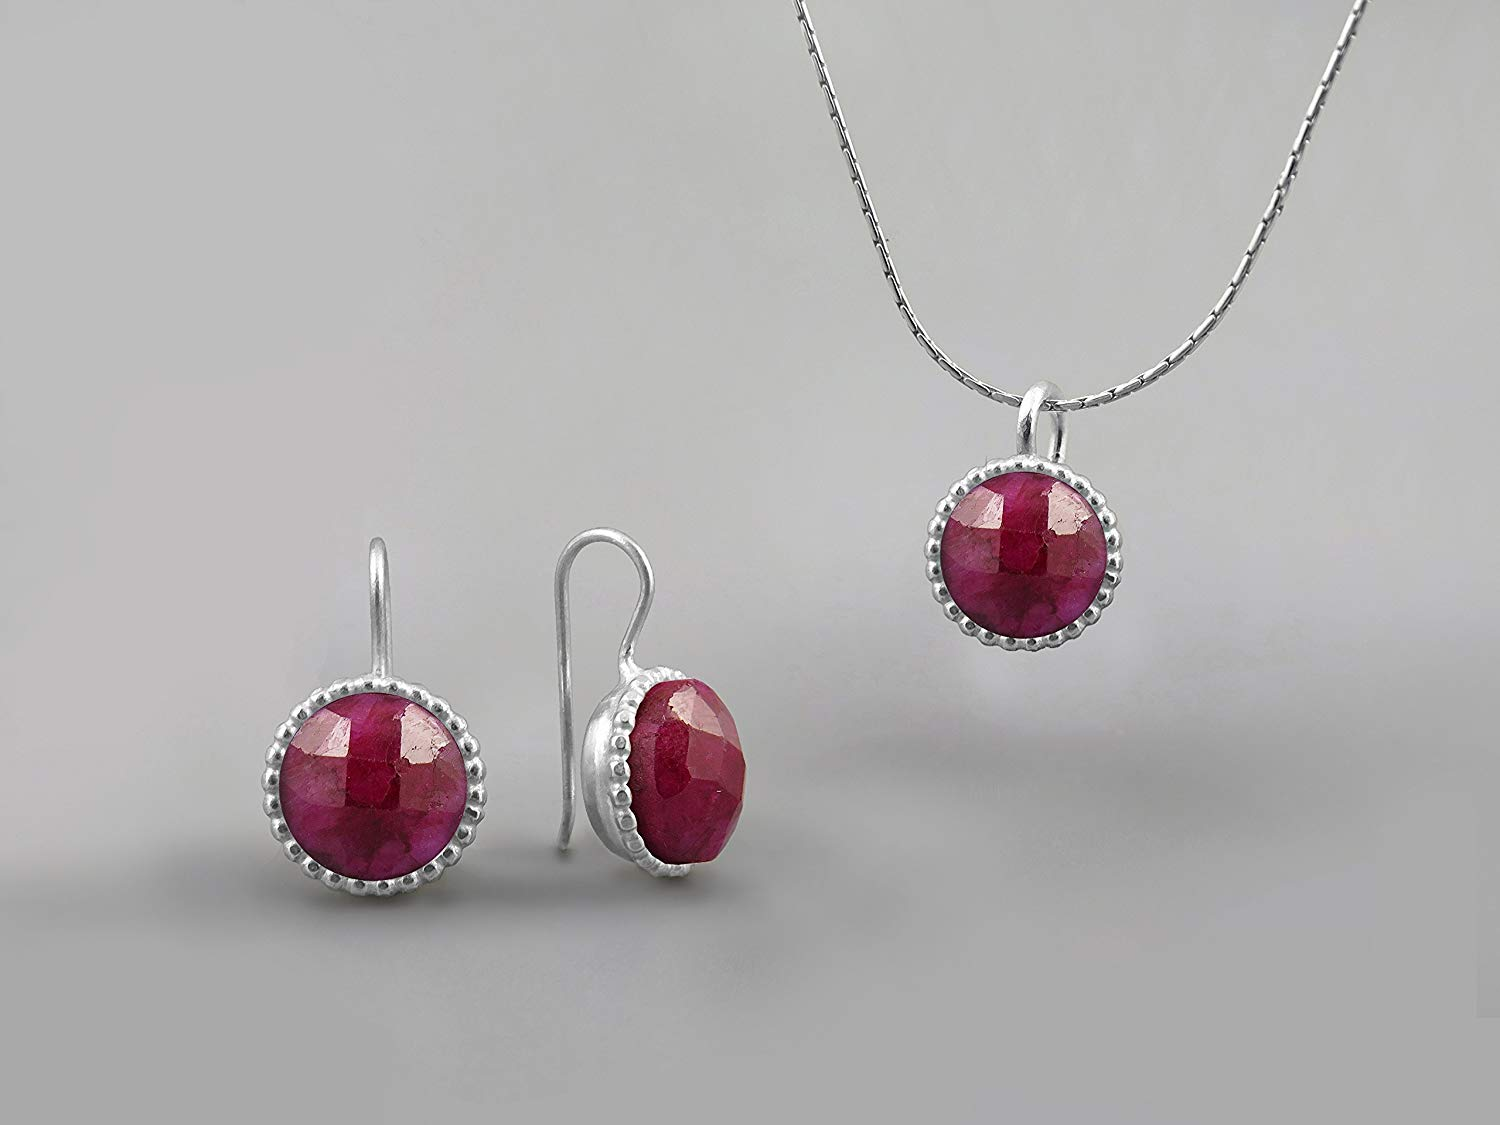 90b5b6f3c Get Quotations · 10 mm Red Ruby Gemstone Round Jewelry Set For Women .925  Sterling Silver July Birthstone